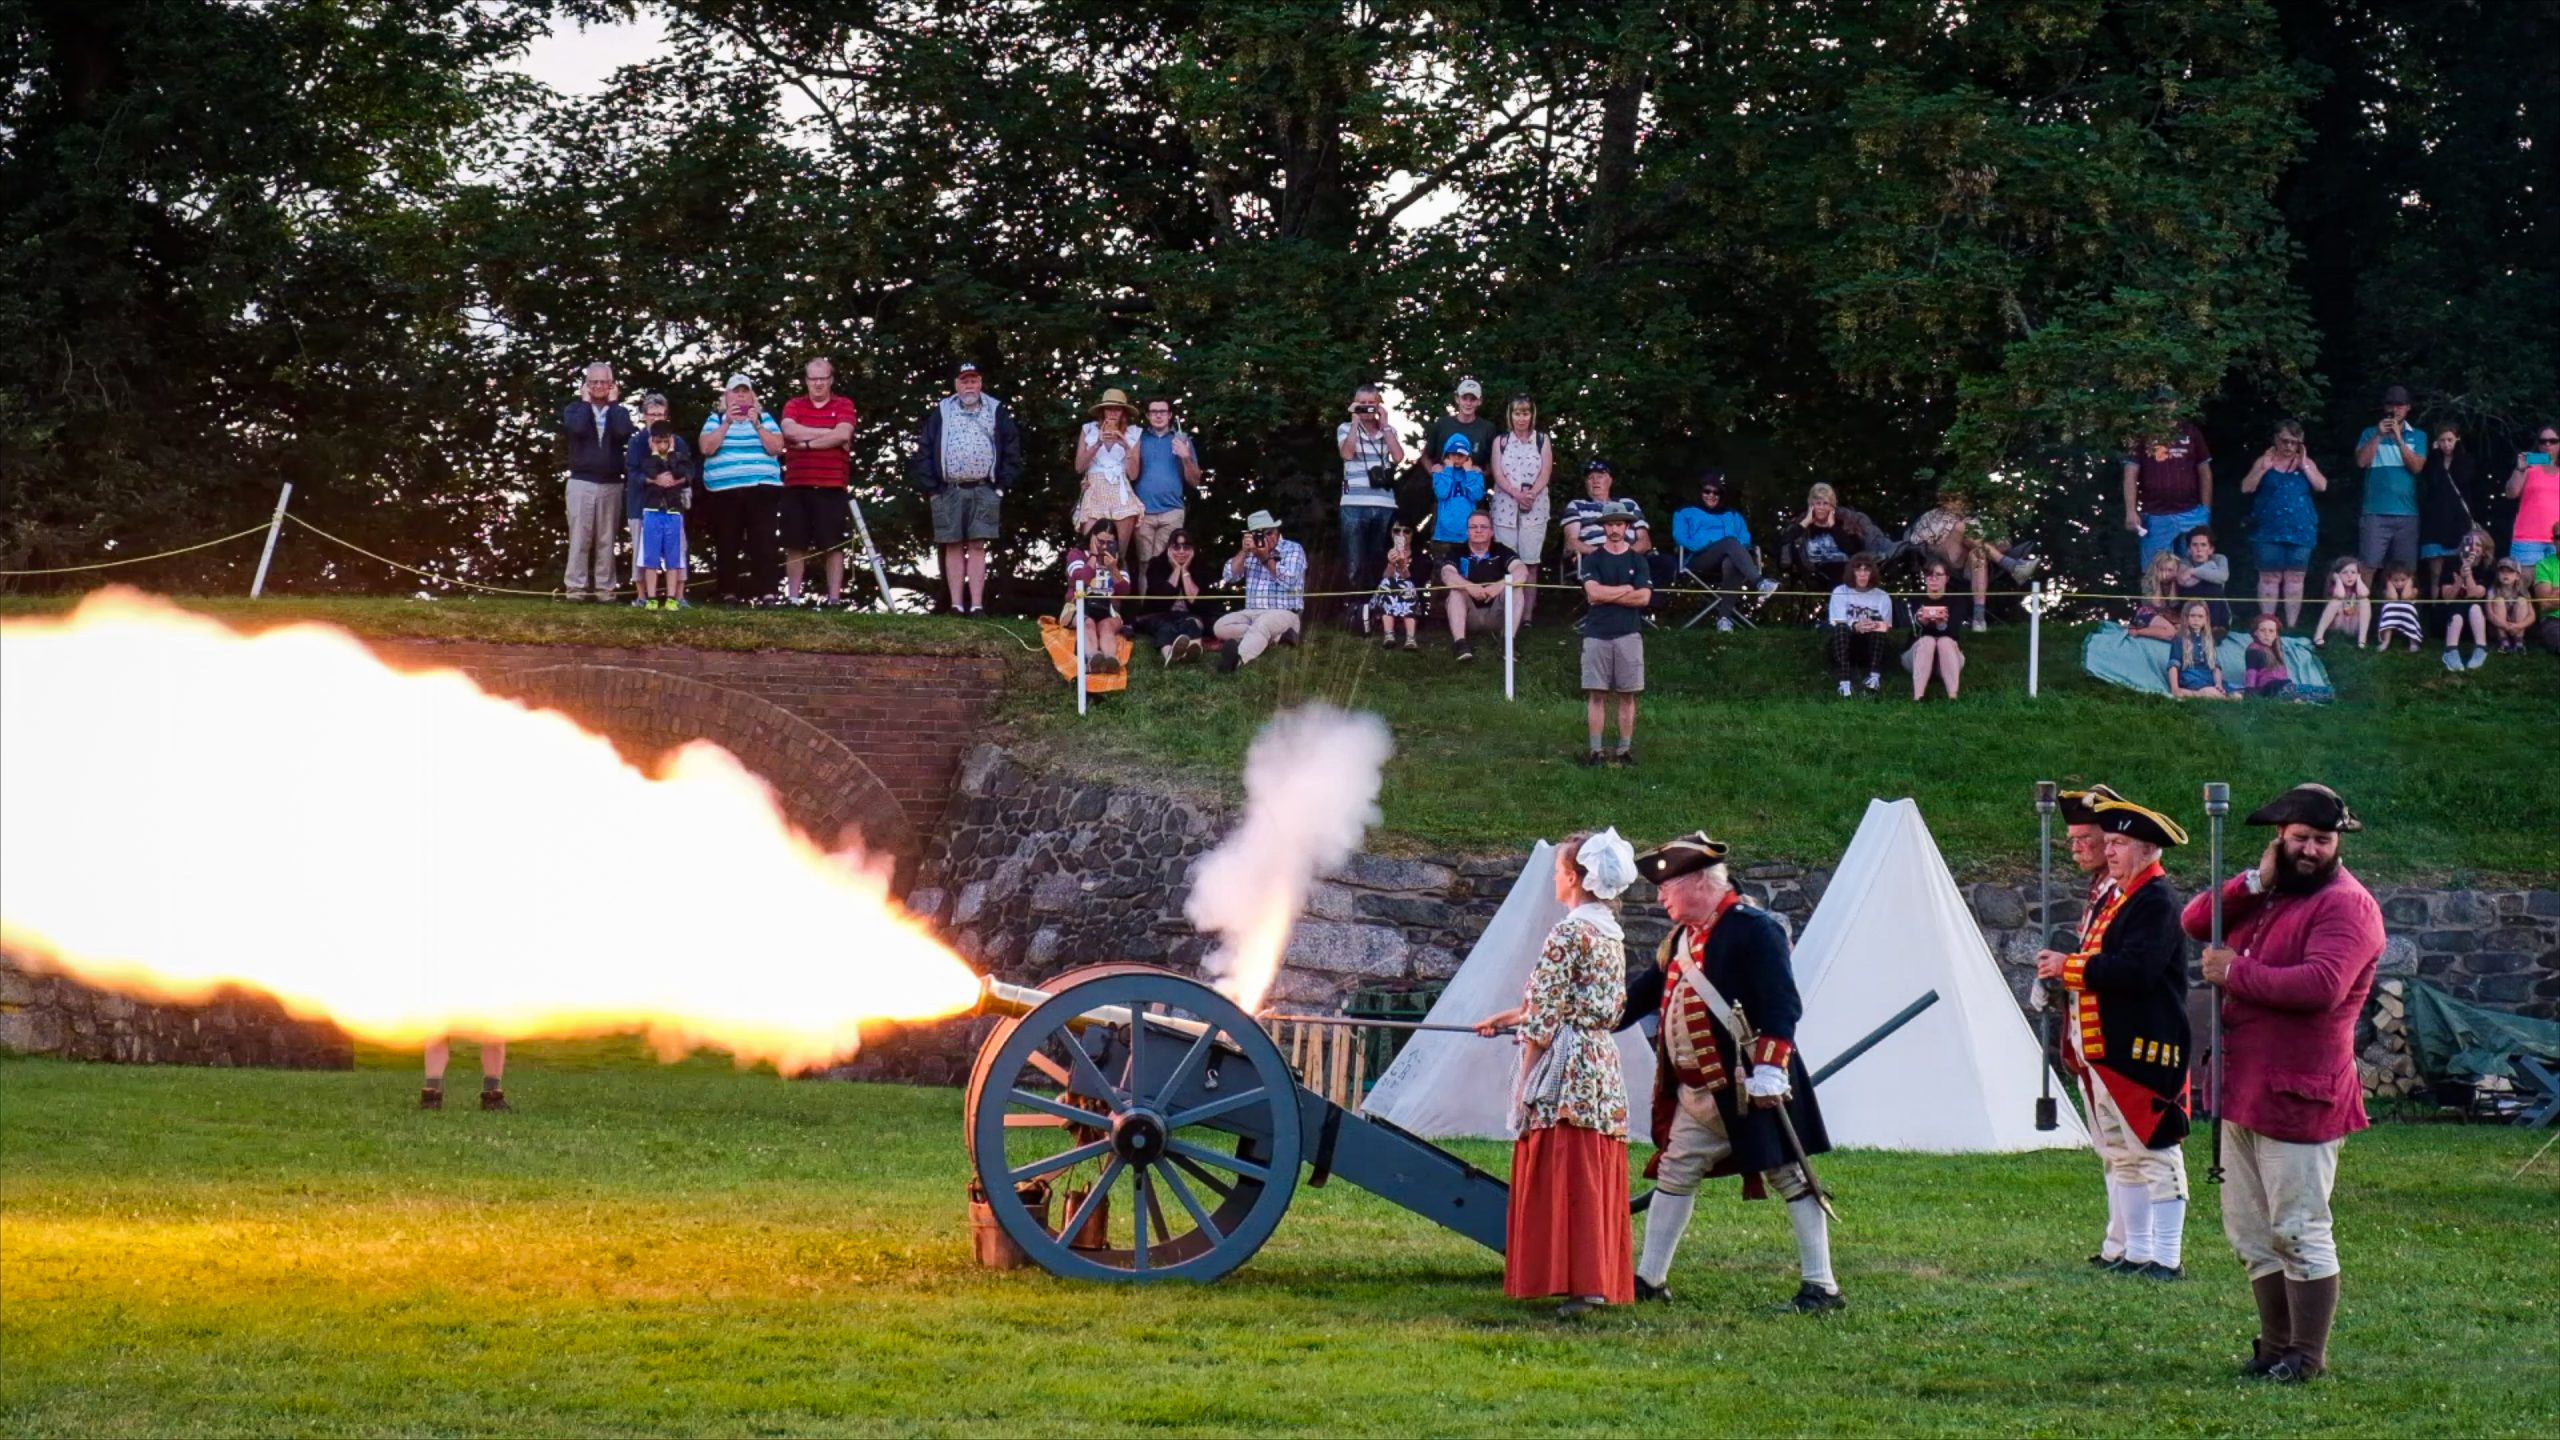 Historical re-enactment of colonial  highlights in Annapolis Royal Nova Scotia